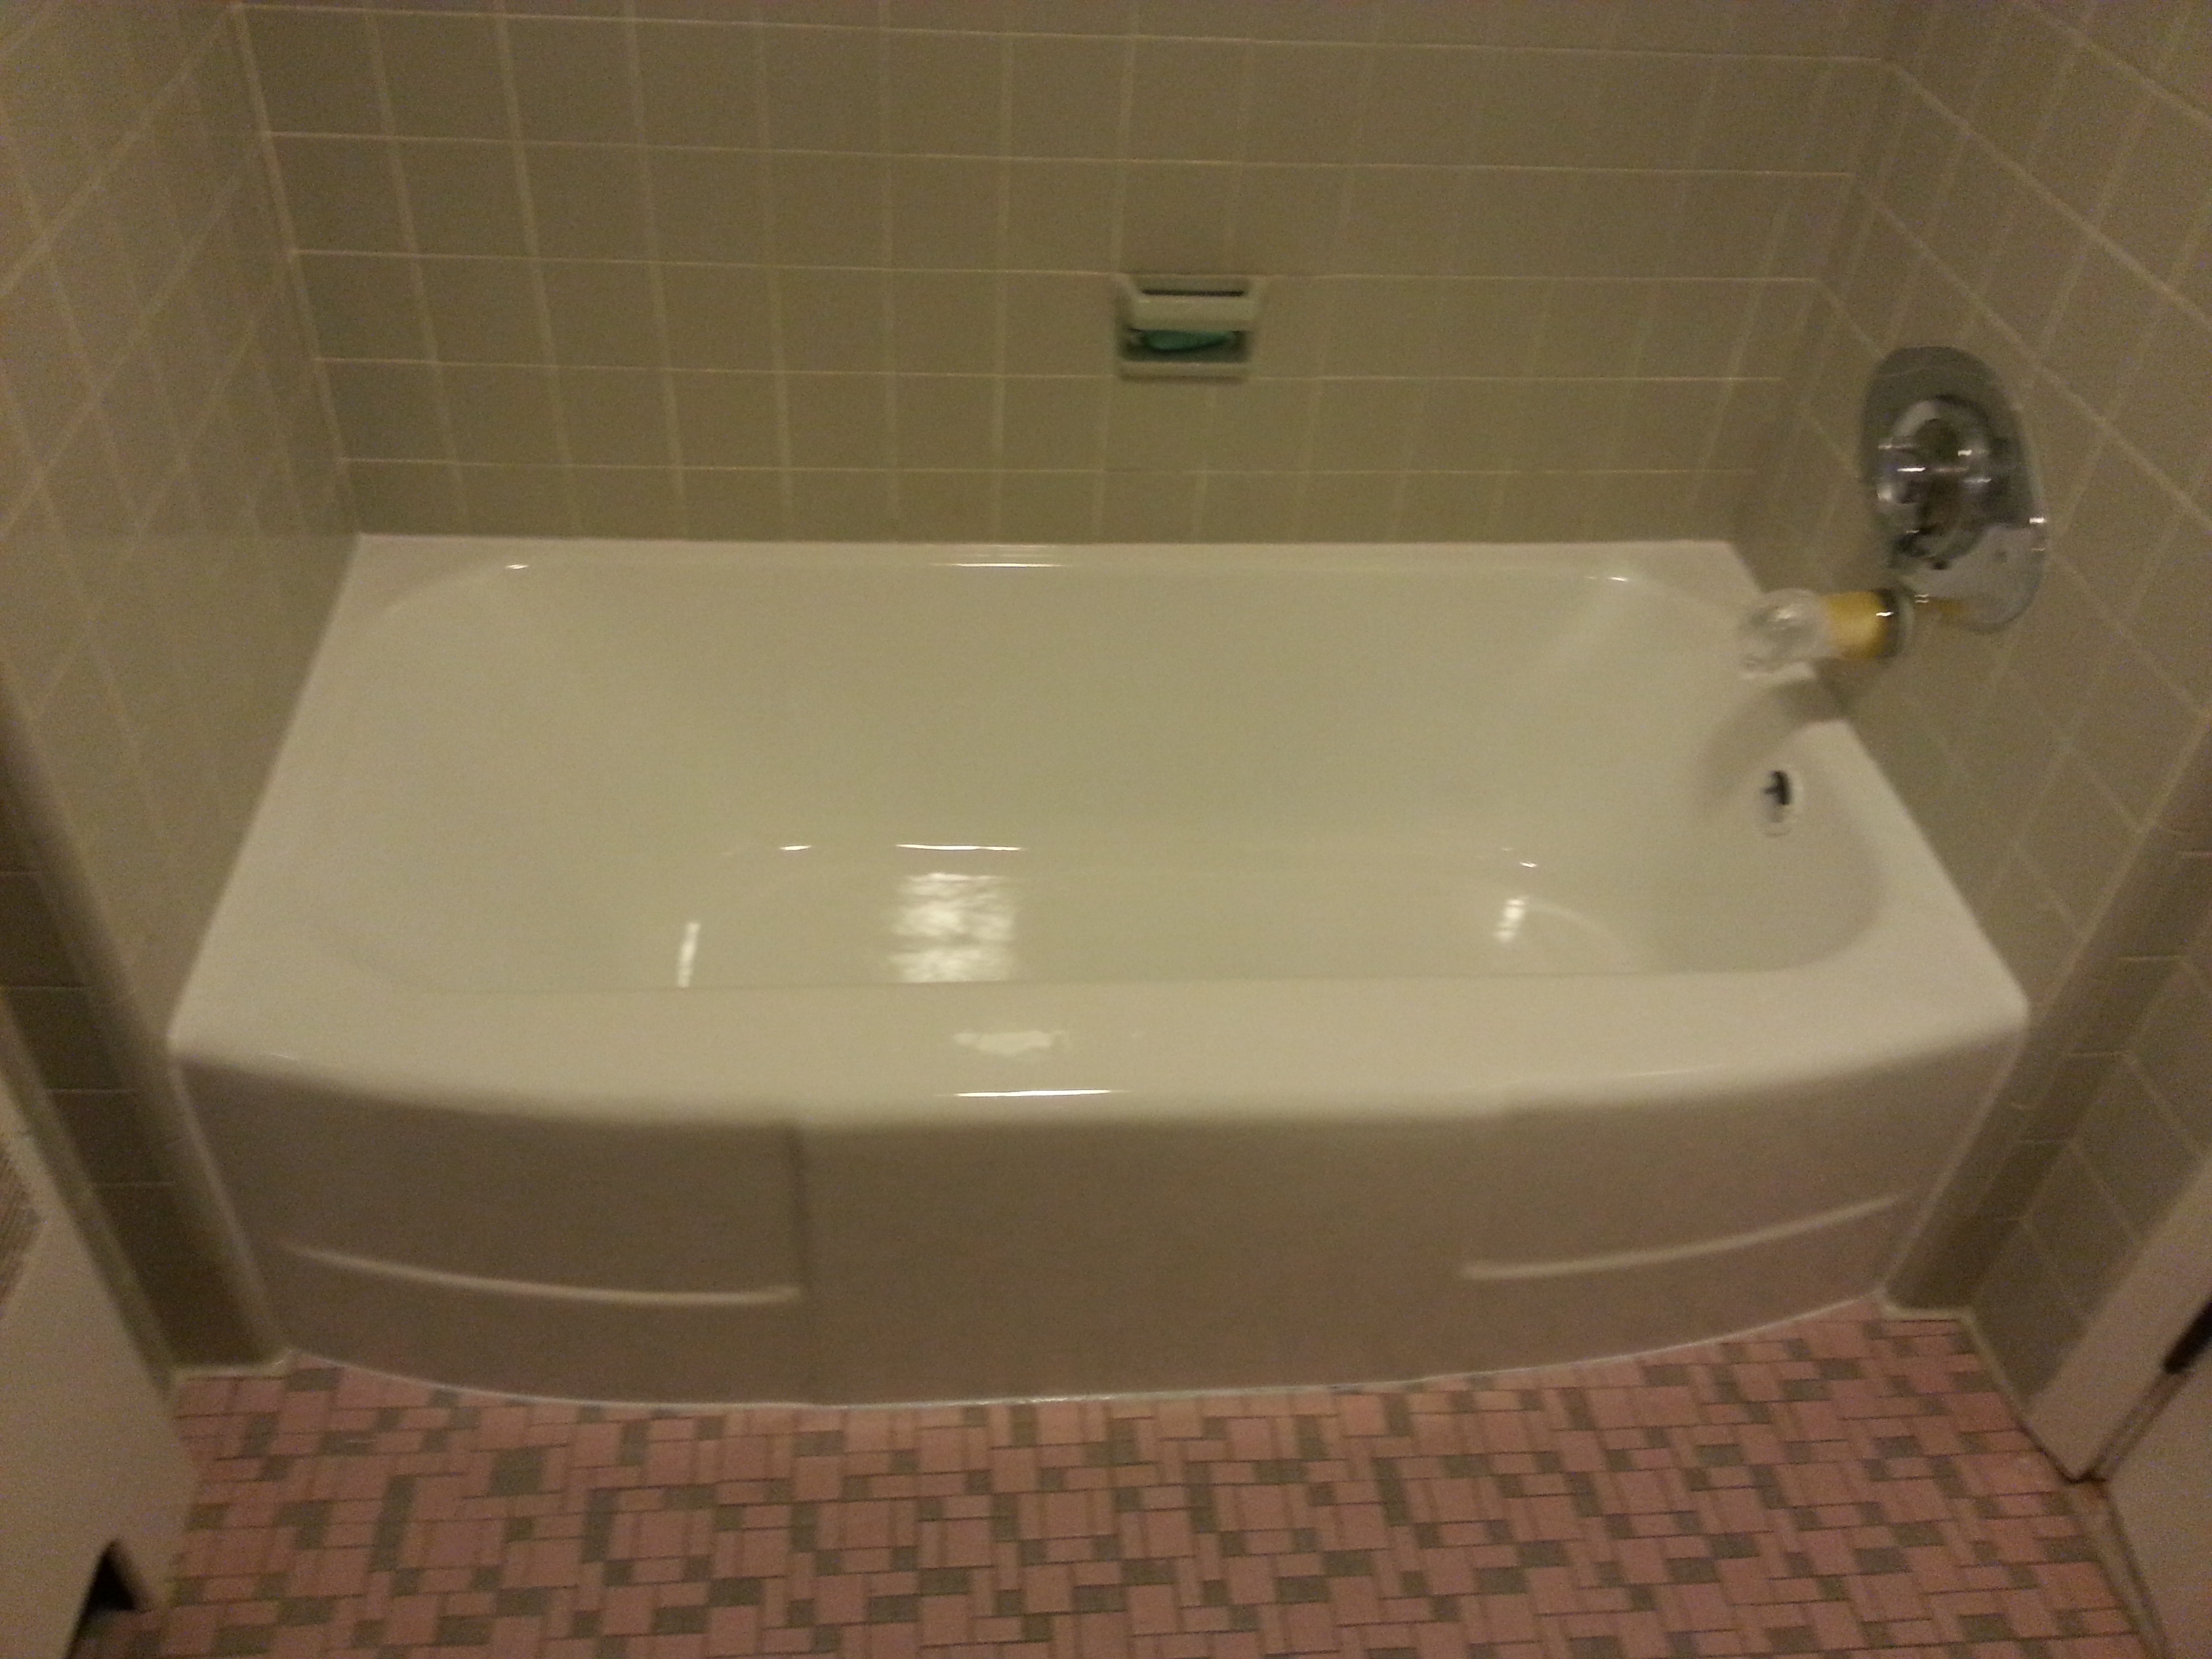 Refinishing and reglazing tub braintree ma touch of gloss for Bathtub refinishing